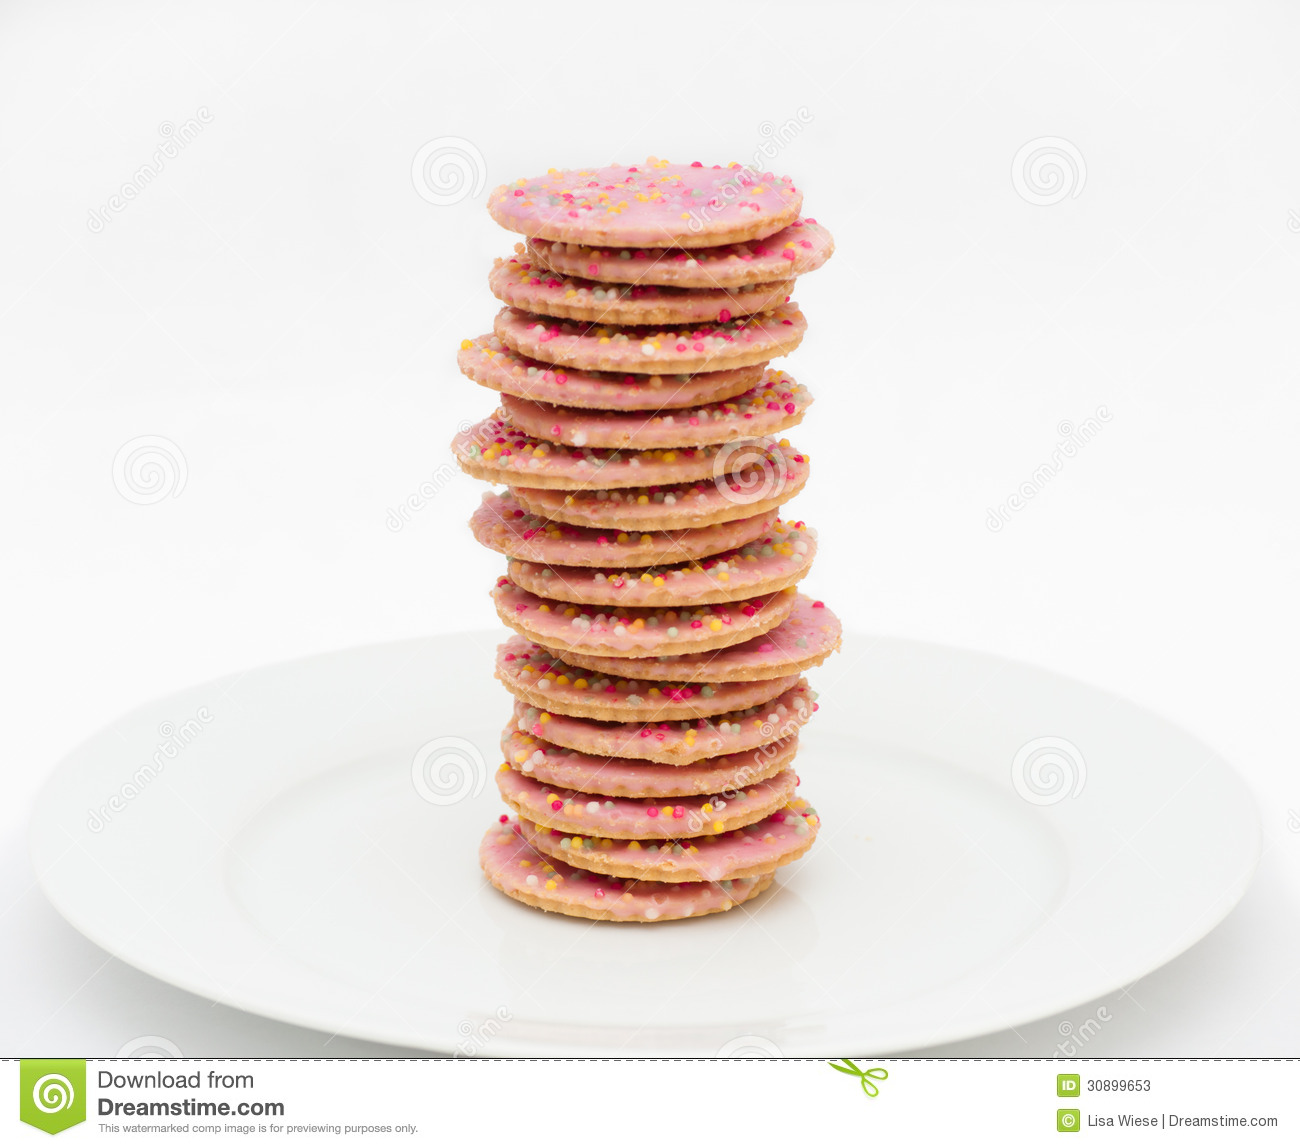 Pink icing cookies / biscuits with sprinkles, casually stacked on a ...